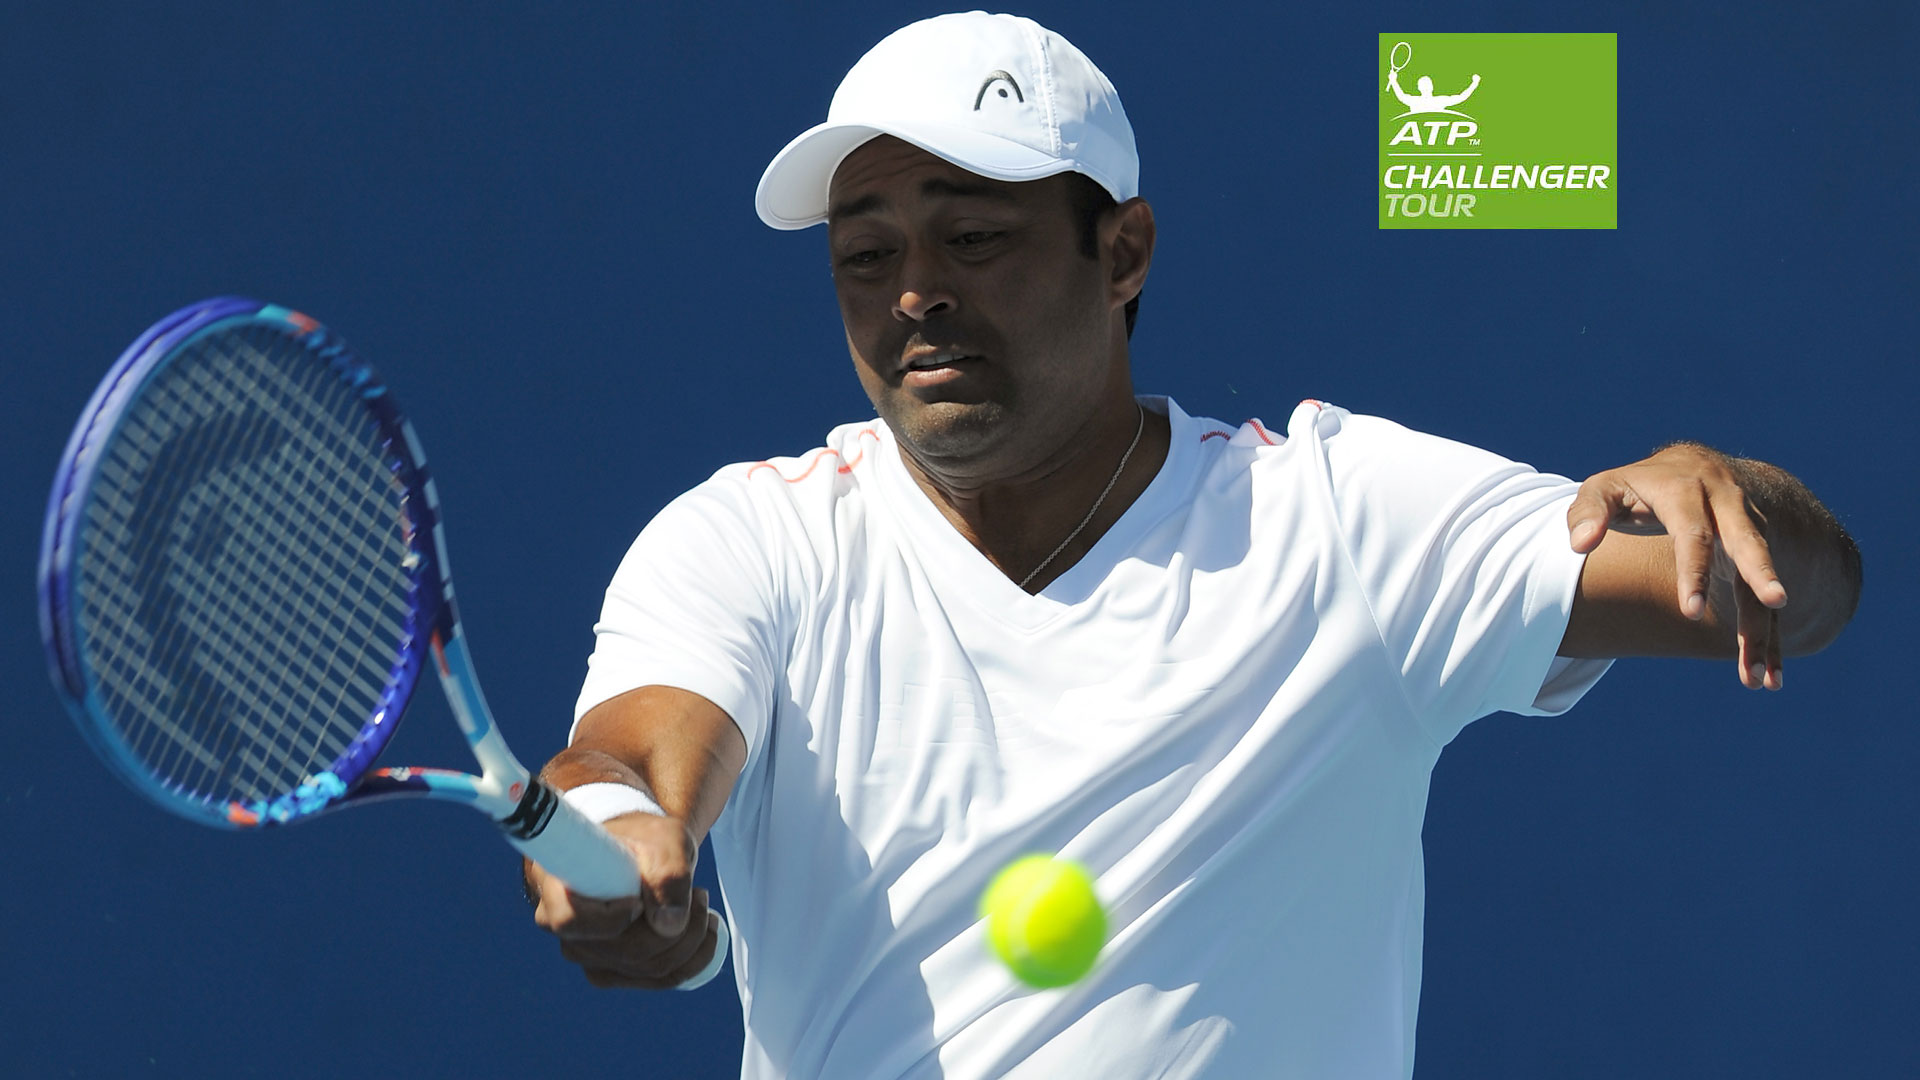 Leander Paes looks to help create future success in Indian tennis.